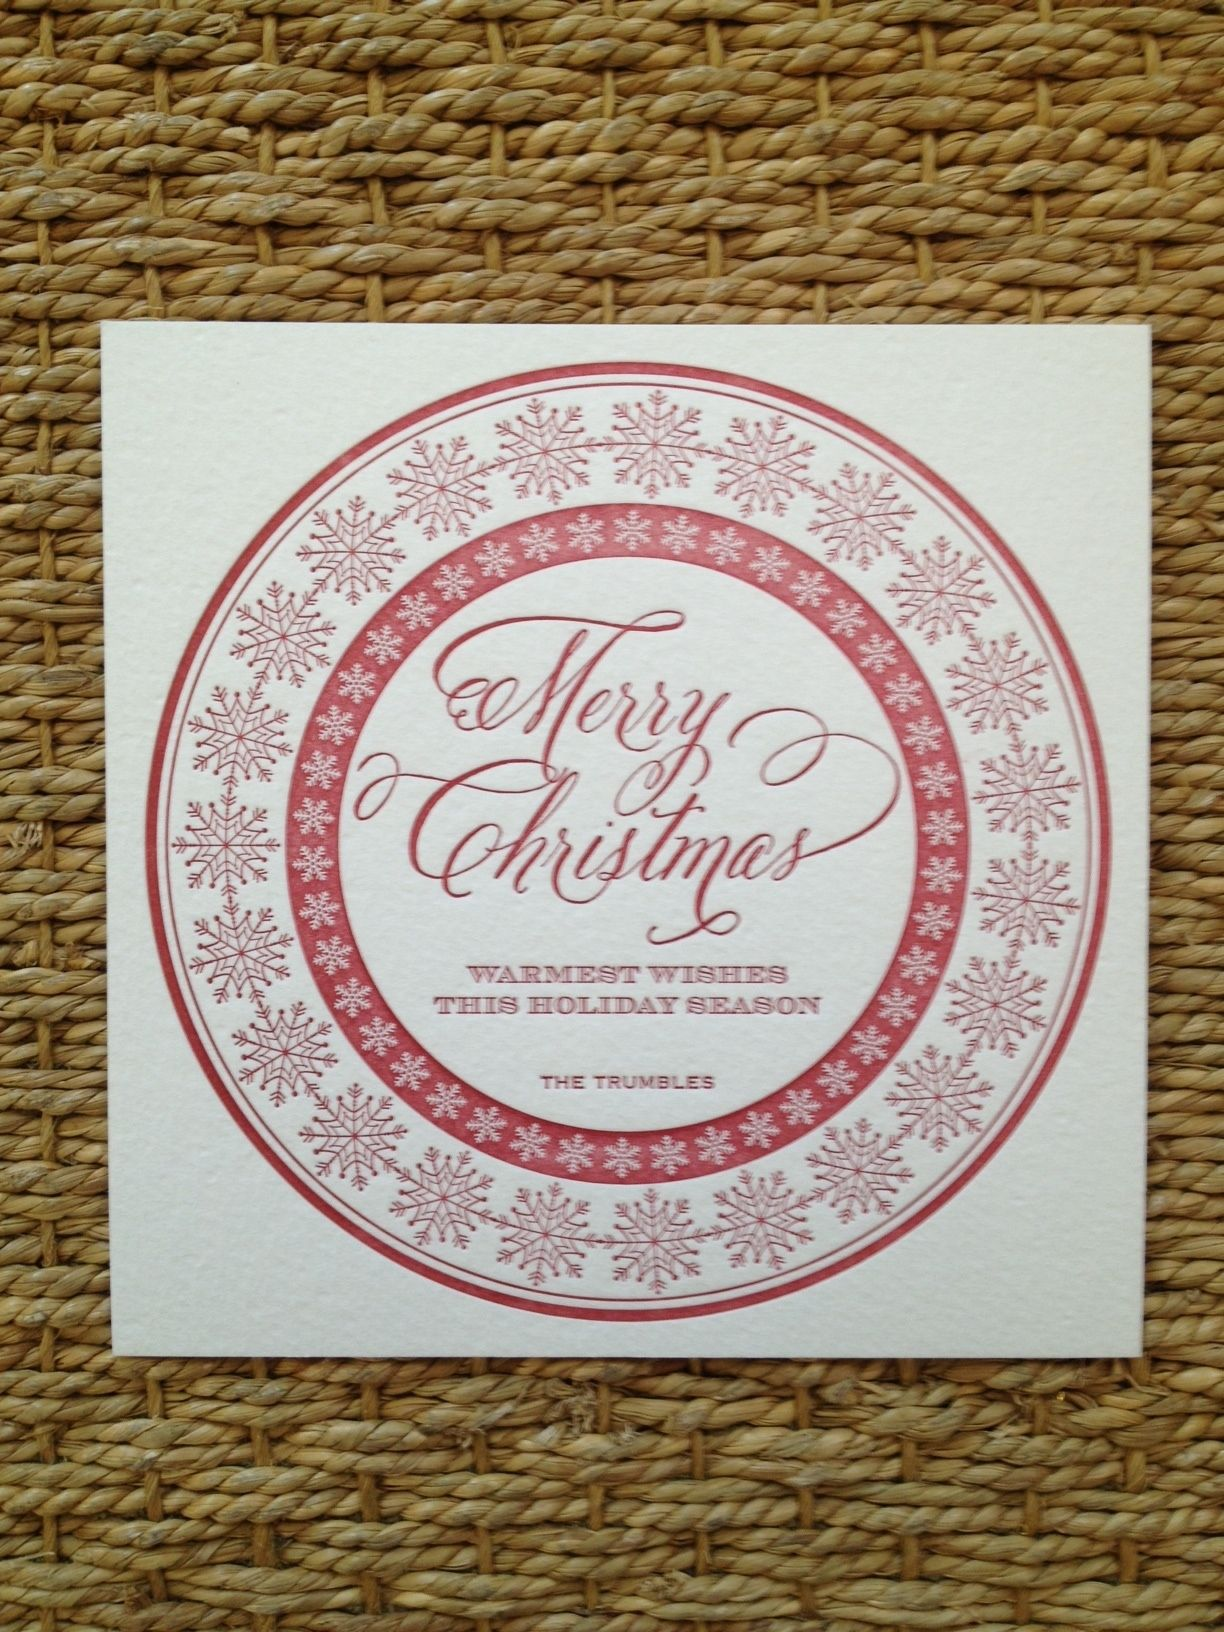 avery address labels wedding invitations%0A Letterpressed Holiday Card by Page Stationery Available at Hayden Avery